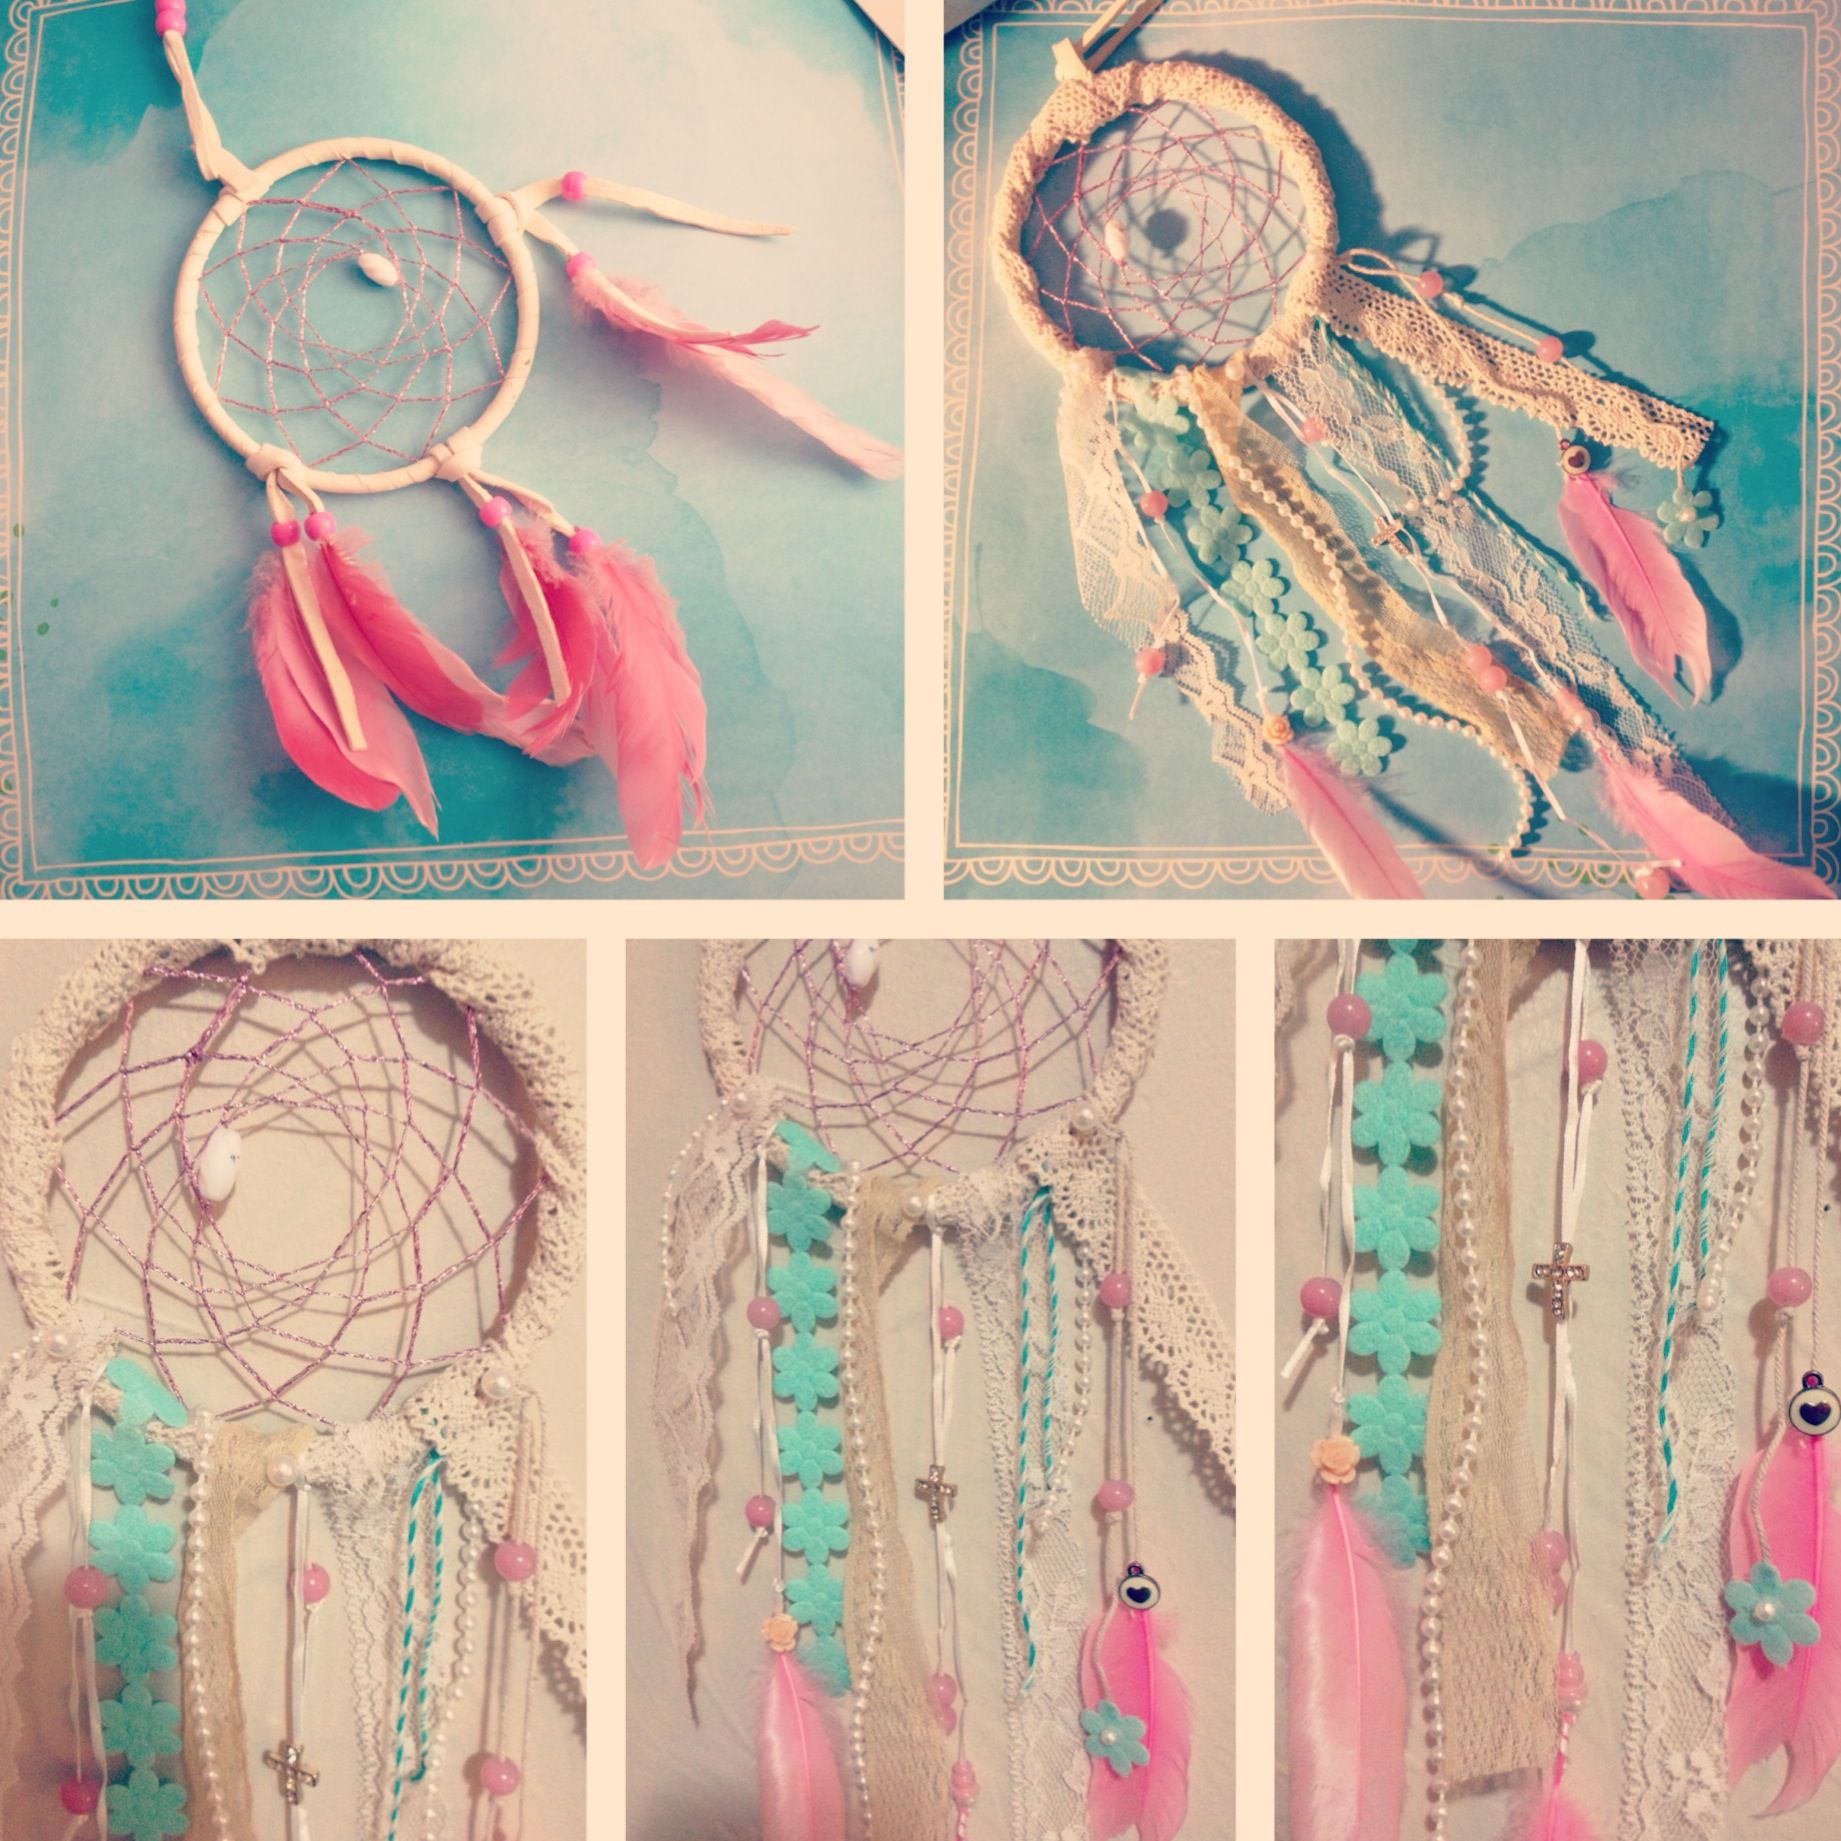 15 Boho Bedroom Designs: Diy Boho Dreamcatcher